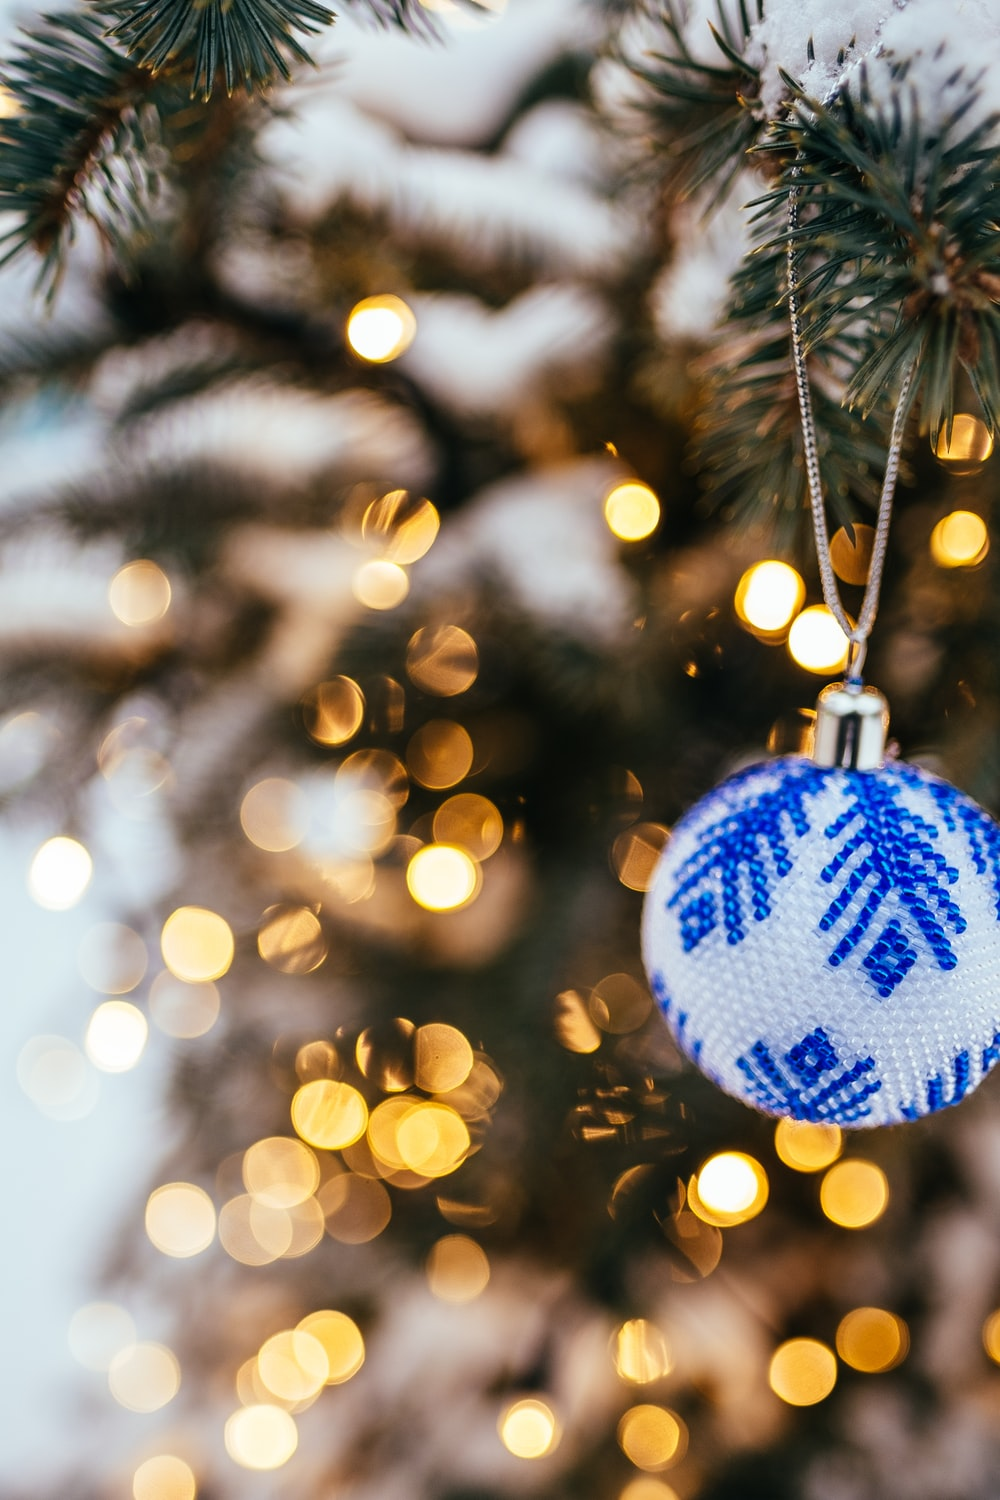 blue and white bauble hanging on christmas tree in bokeh photography